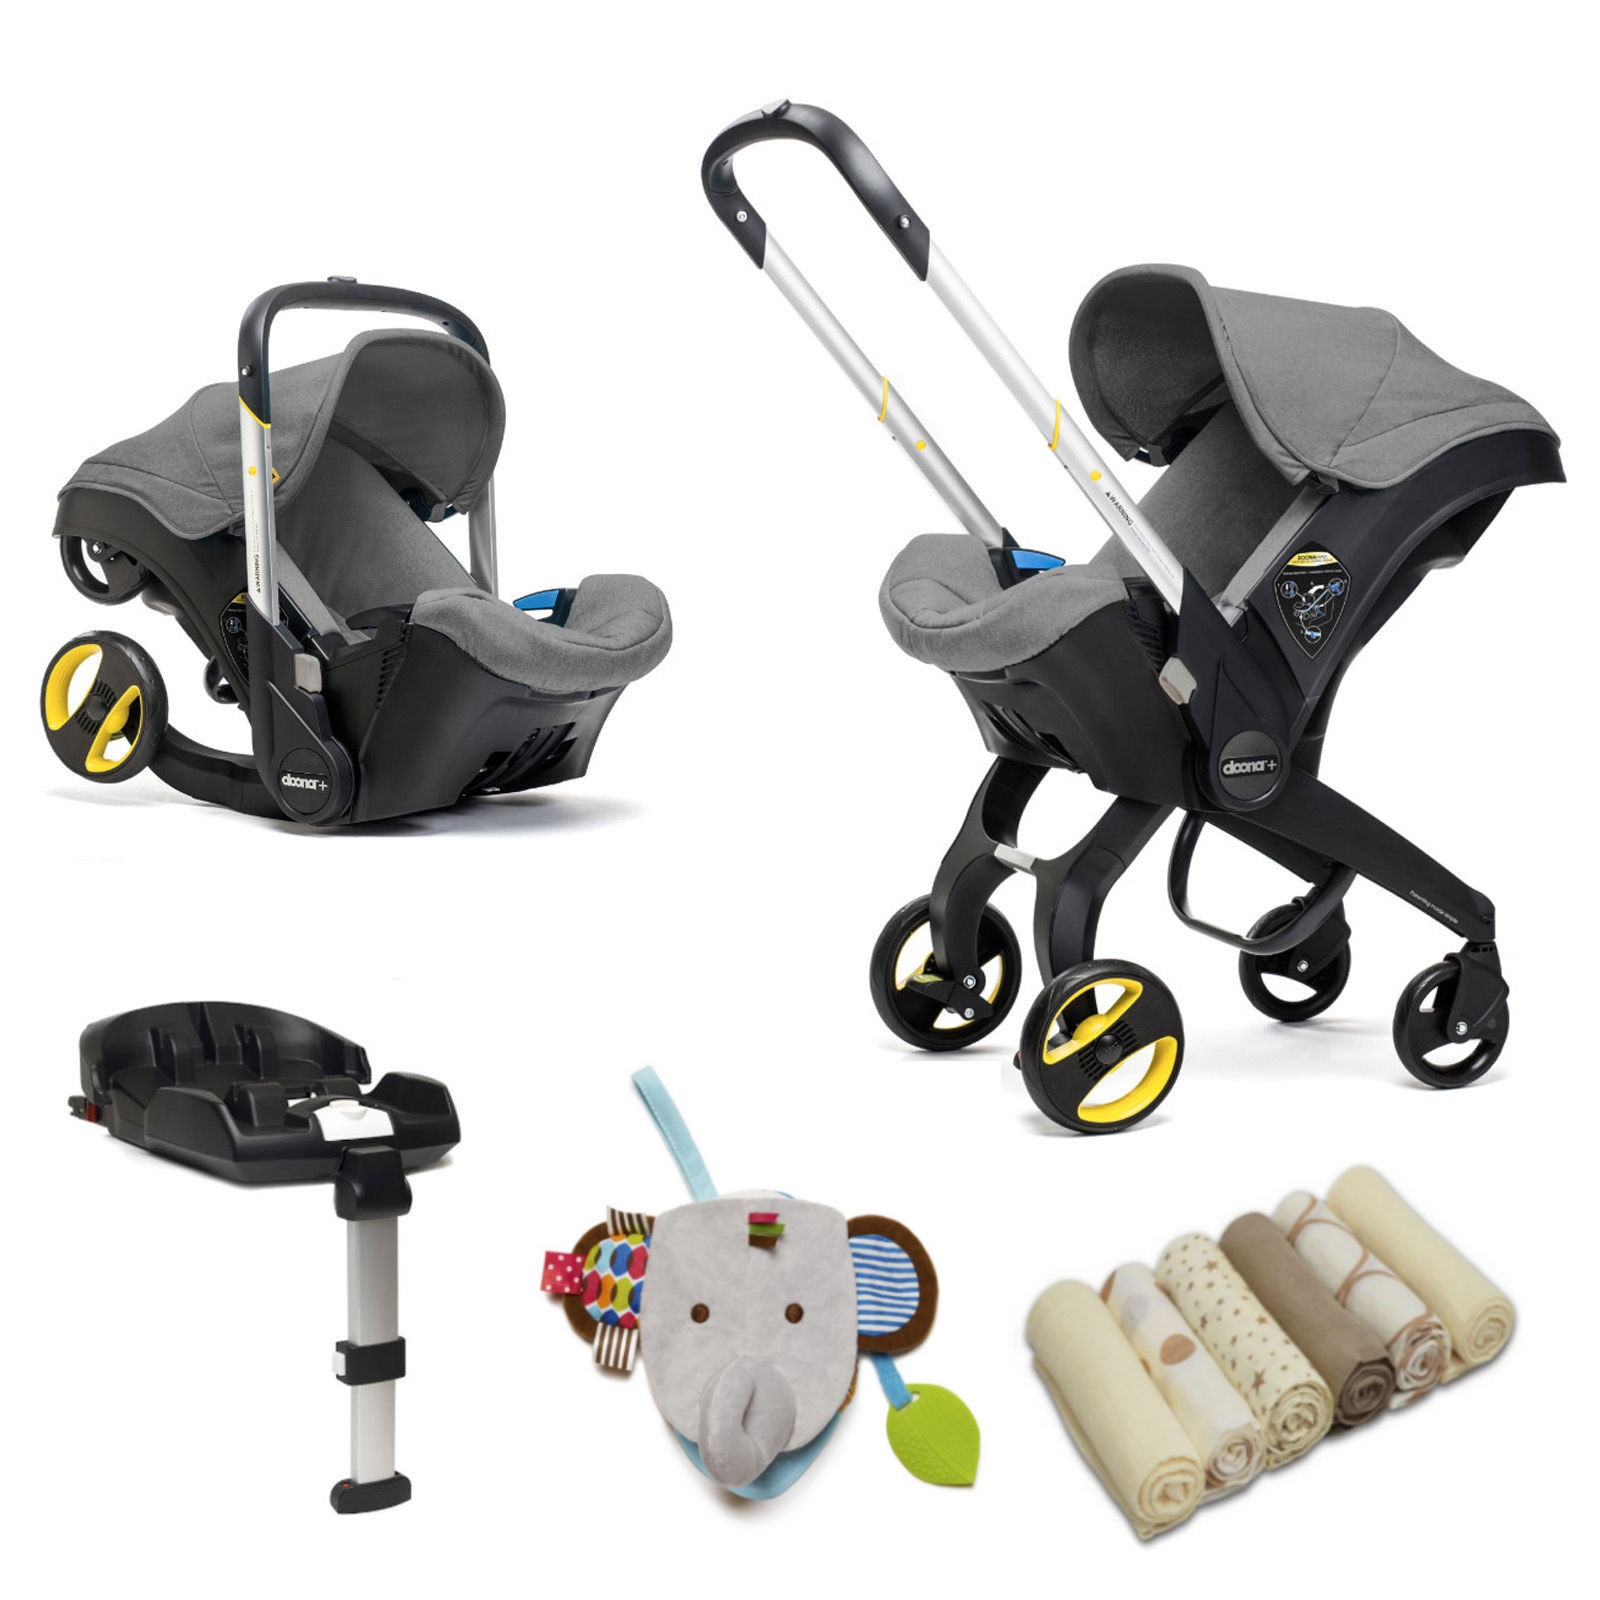 Doona Infant Car Seat Stroller With Isofix Base Accessories